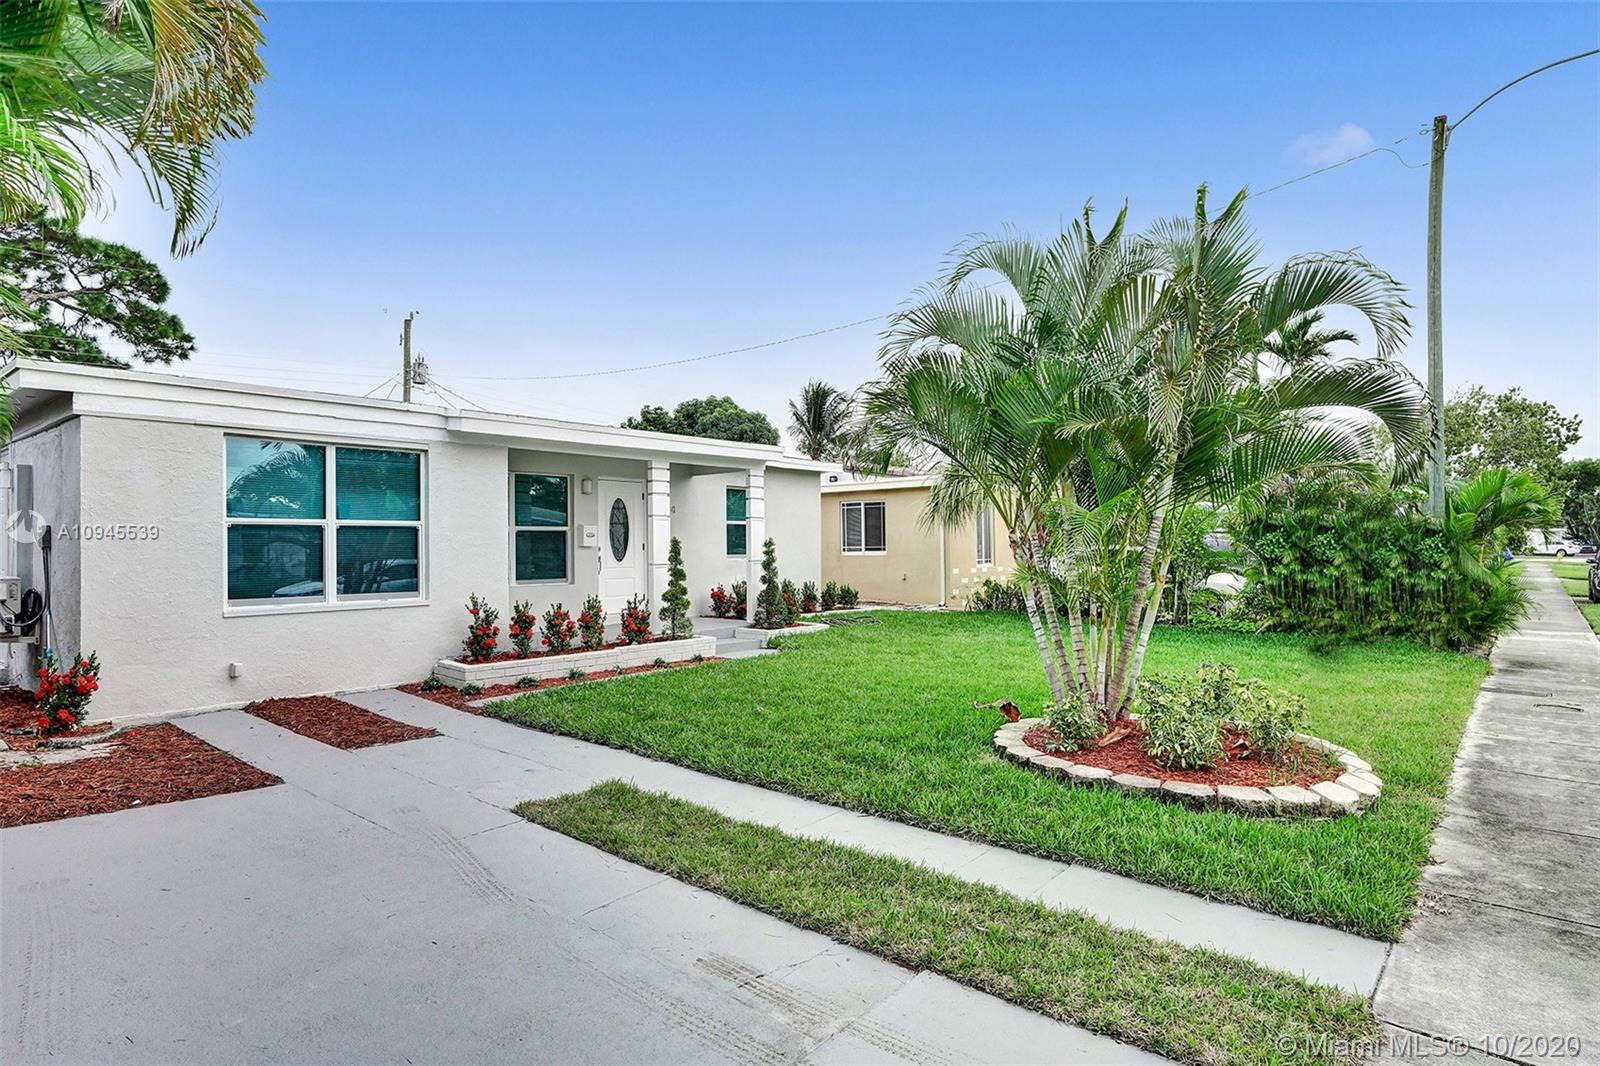 BEAUTIFULLY FULLY REMODELED 3 BEDROOM 2 BATHROOM HOME IN THE HEART OF OAKLAND PARK! PERFECT TURN-KEY HOME OR VACATION RENTAL OPPORTUNITY! HOME FEATURES ALL HURRICANE IMPACT WINDOWS AND DOORS, 2006 SHINGLE ROOF, BRAND NEW 2020 FLAT ROOF, BRAND NEW 2020 A/C UNIT, ELECTRIC TANKLESS WATER HEATER, NEW BATHROOMS, NEW IRRIGATION SYSTEMS WITH NEW PLANTS, NEW CUSTOM KITCHEN WITH HIGH-END EUROPEAN CABINETS, BRAND NEW STAINLESS STEEL APPLIANCES, QUARTZ COUNTERTOP, RECESSED LIGHTING THROUGHOUT, VERY LARGE BACKYARD NICE FOR ENTERTAINMENT OR TO BUILD A POOL, SPACIOUS DRIVEWAY, FRESHLY PAINTED INSIDE/OUT... MINUTES FROM SCHOOLS, BEACH, SHOPPING PLAZAS, ETC... HURRY THIS WONT LAST LONG!!